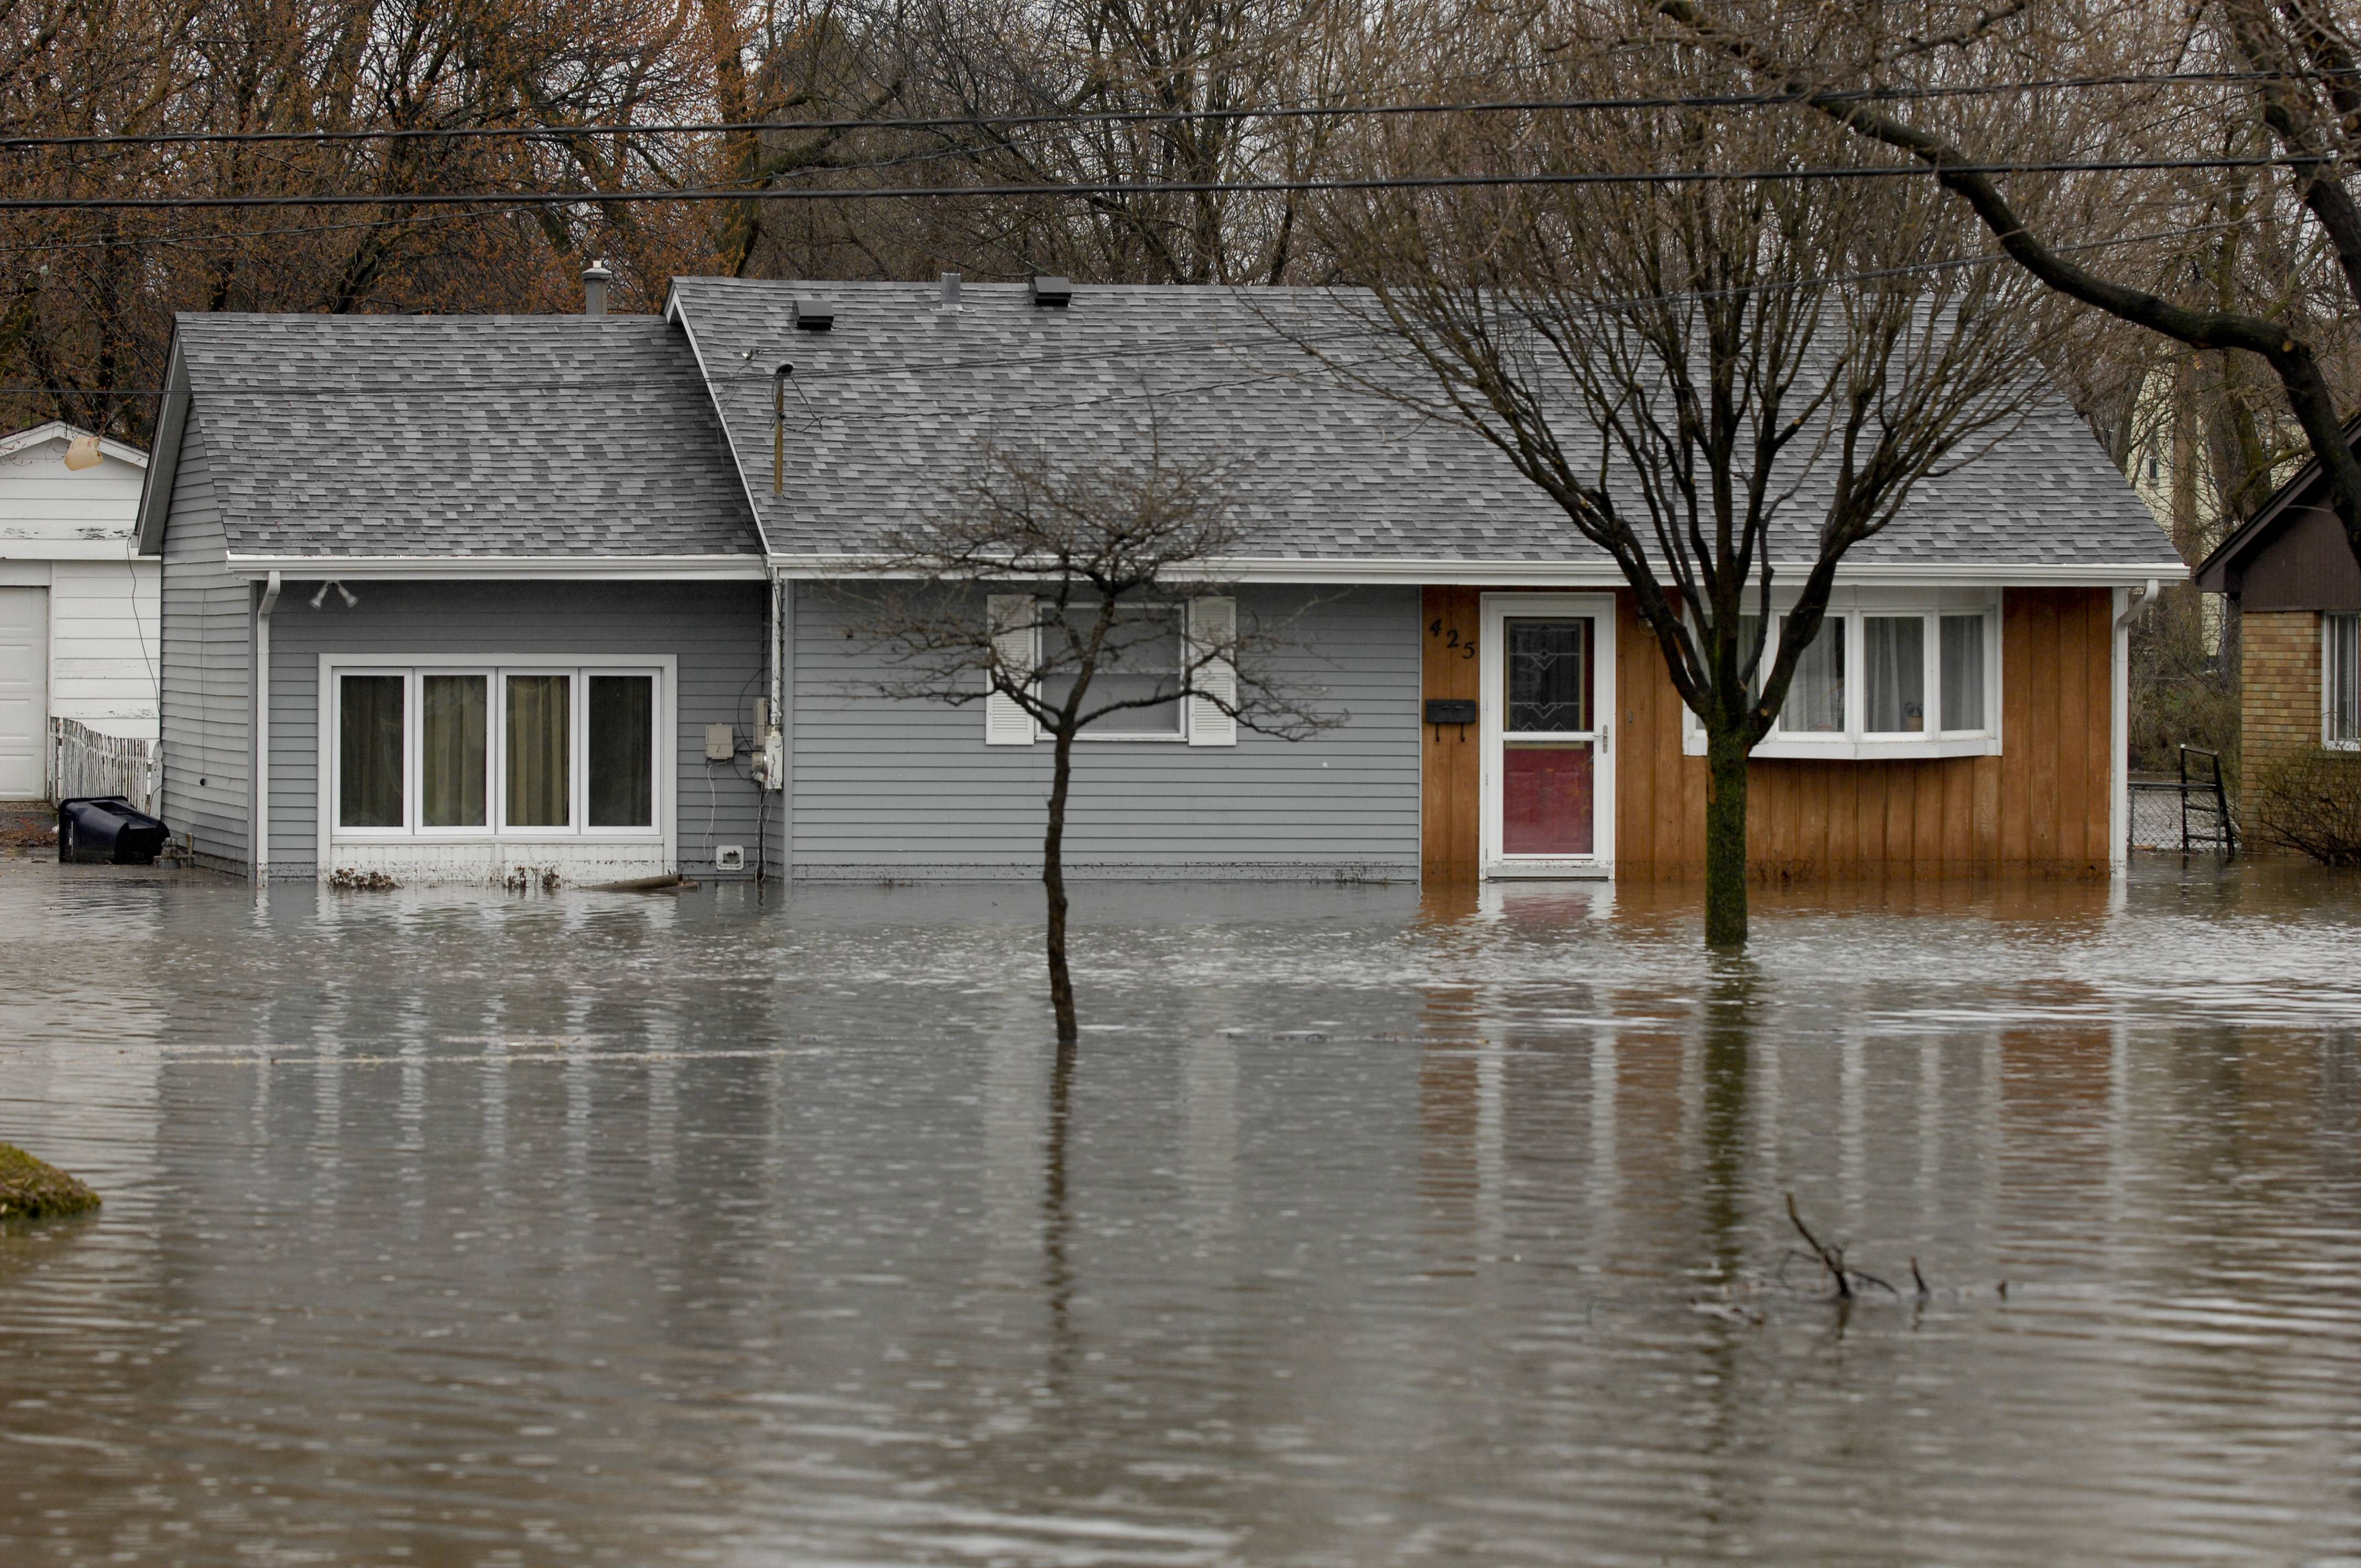 The home of Kurt and Debra Langworthy along Finley Road in Lombard flooded onThursday.